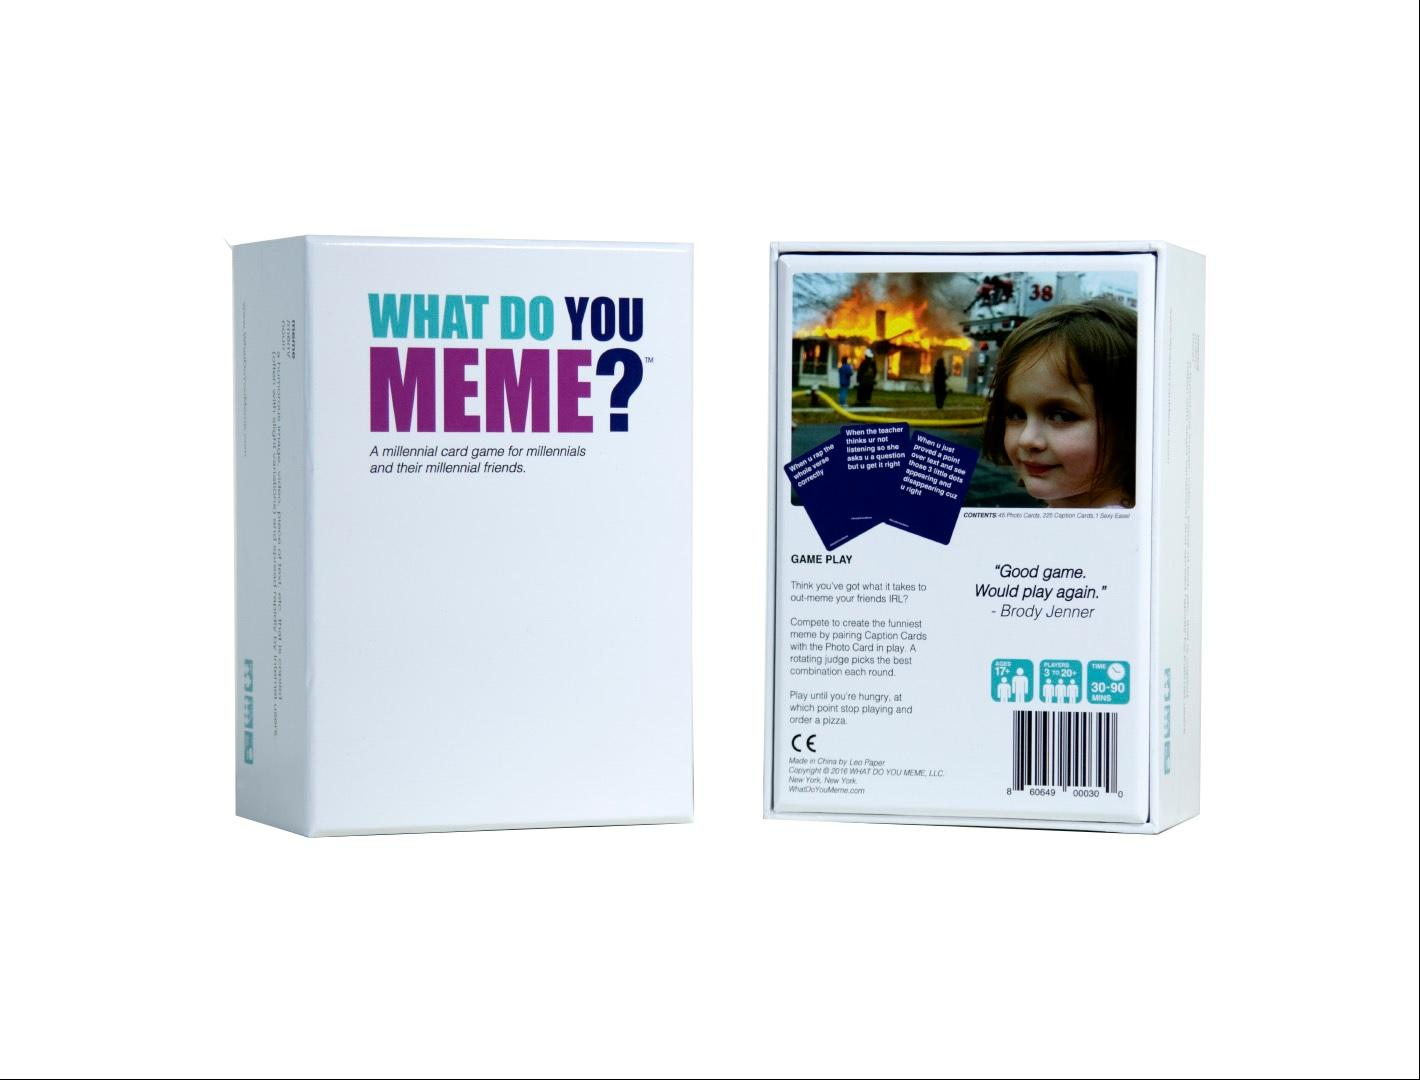 7a8f2bec 7396 4db2 9289 dfcd24569054 what do you meme? adult party game, card games amazon canada